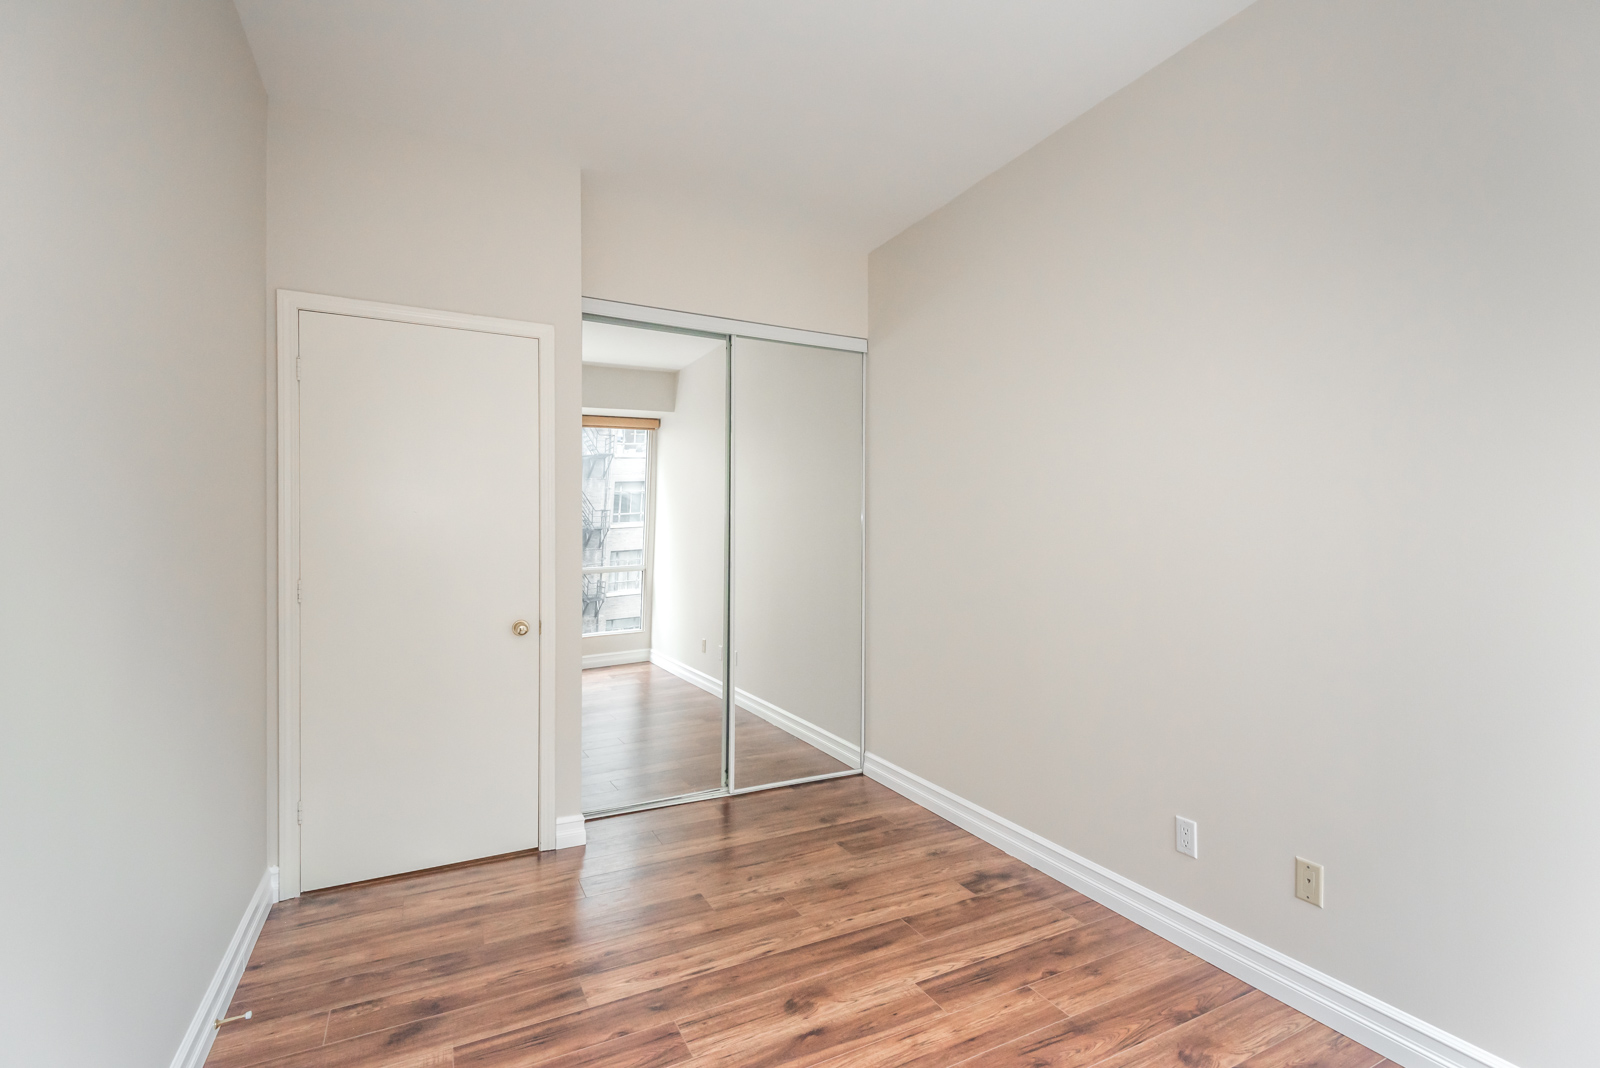 While not as large, this room maybe better lit thanks to the closet's reflective exterior.